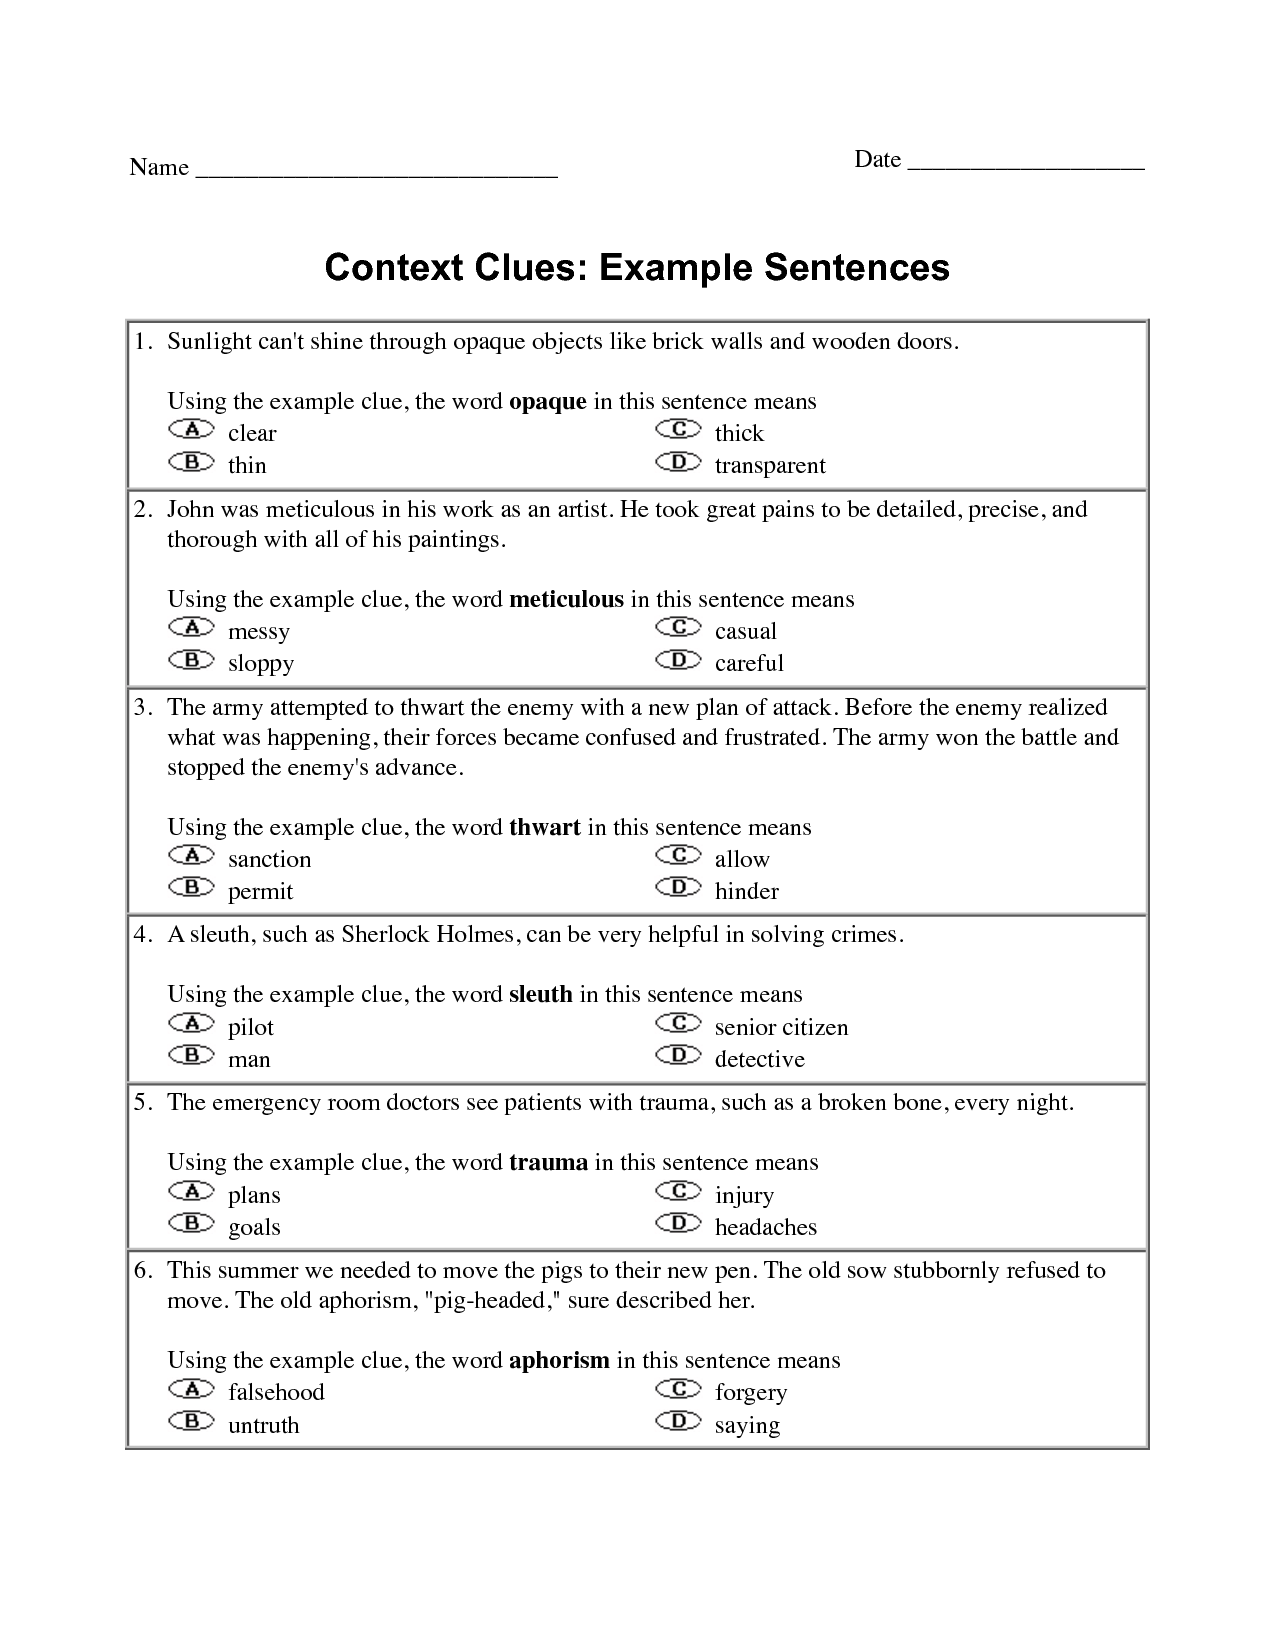 Context Clues Worksheet Grade 5